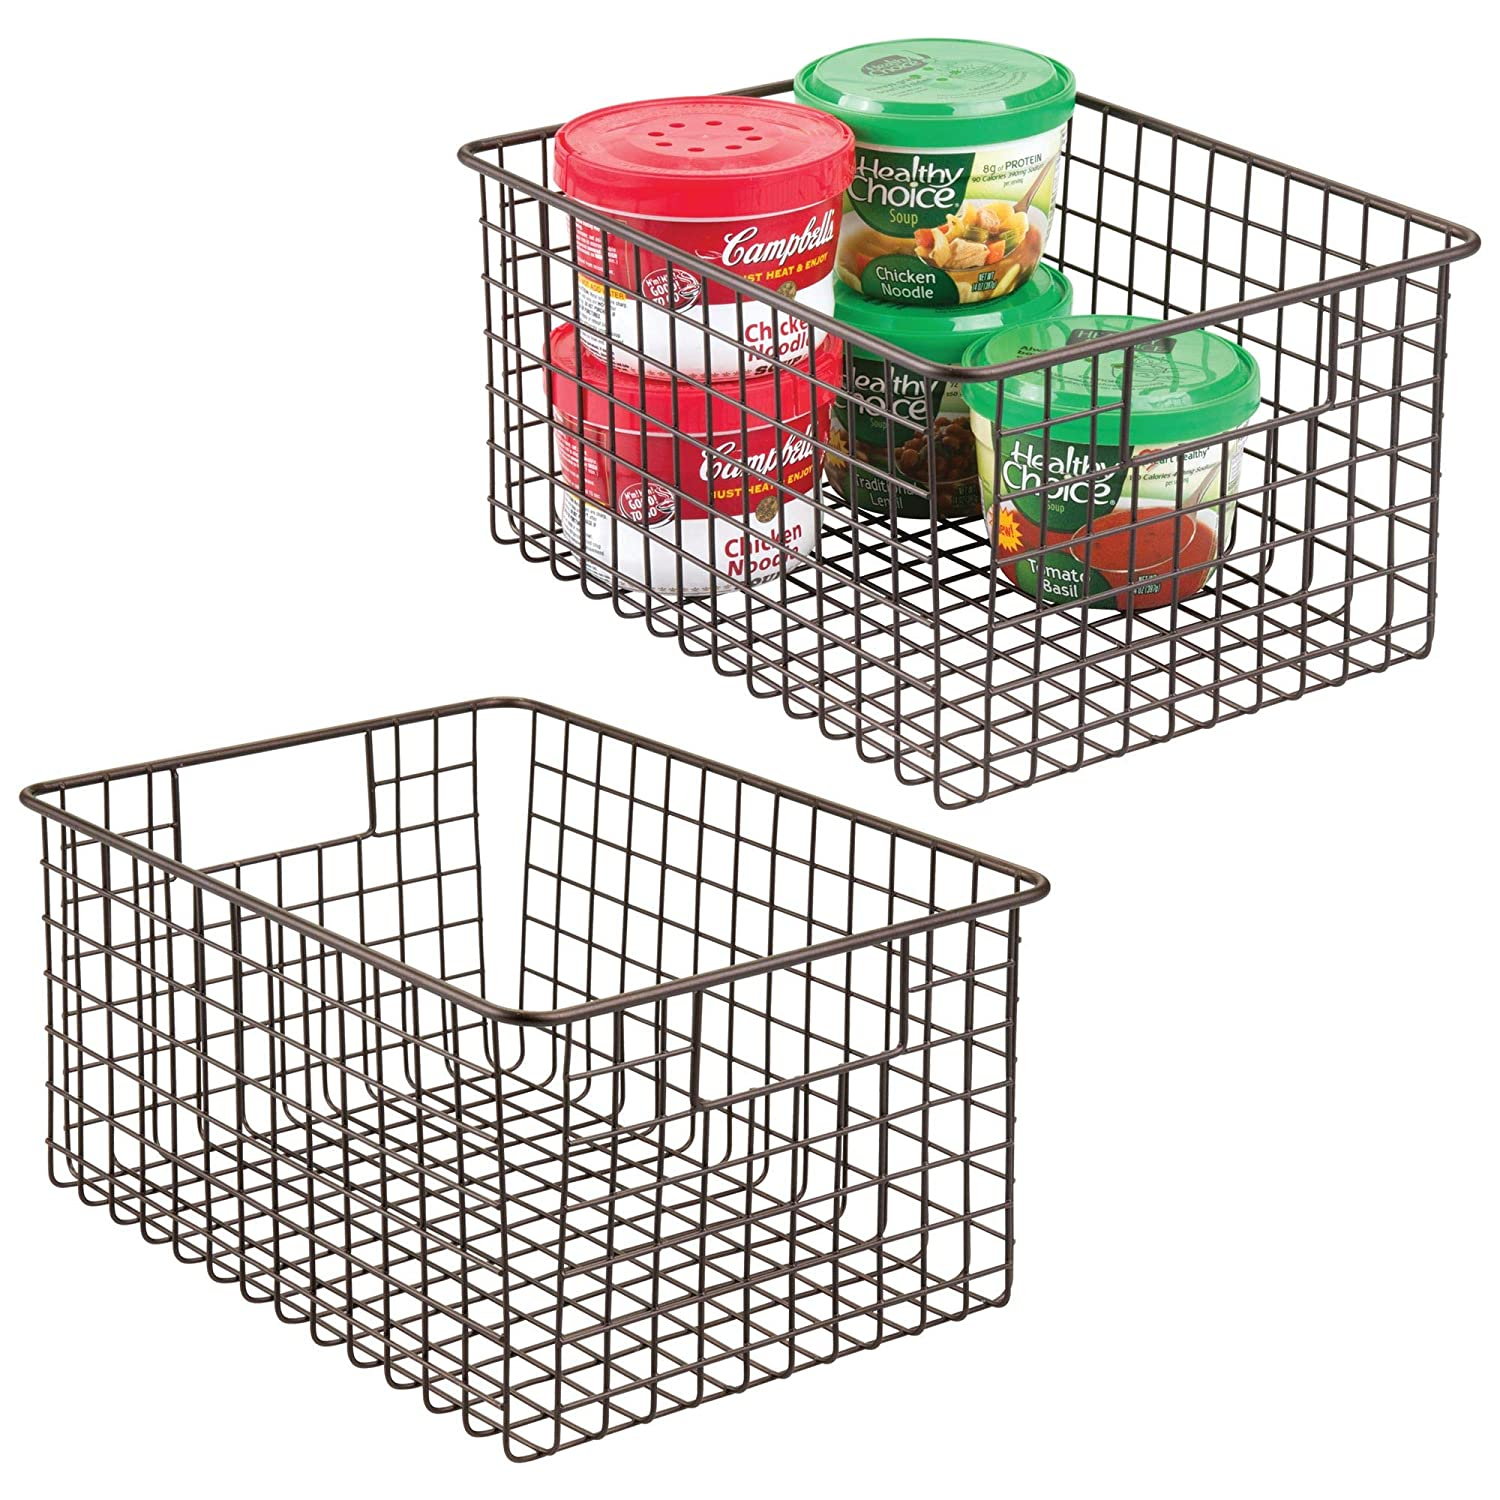 """mDesign Farmhouse Decor Metal Wire Food Storage Organizer Bin Basket with Handles - for Kitchen Cabinets, Pantry, Bathroom, Laundry Room, Closets, Garage - 12"""" x 9"""" x 6"""" - 2 Pack - Bronze"""